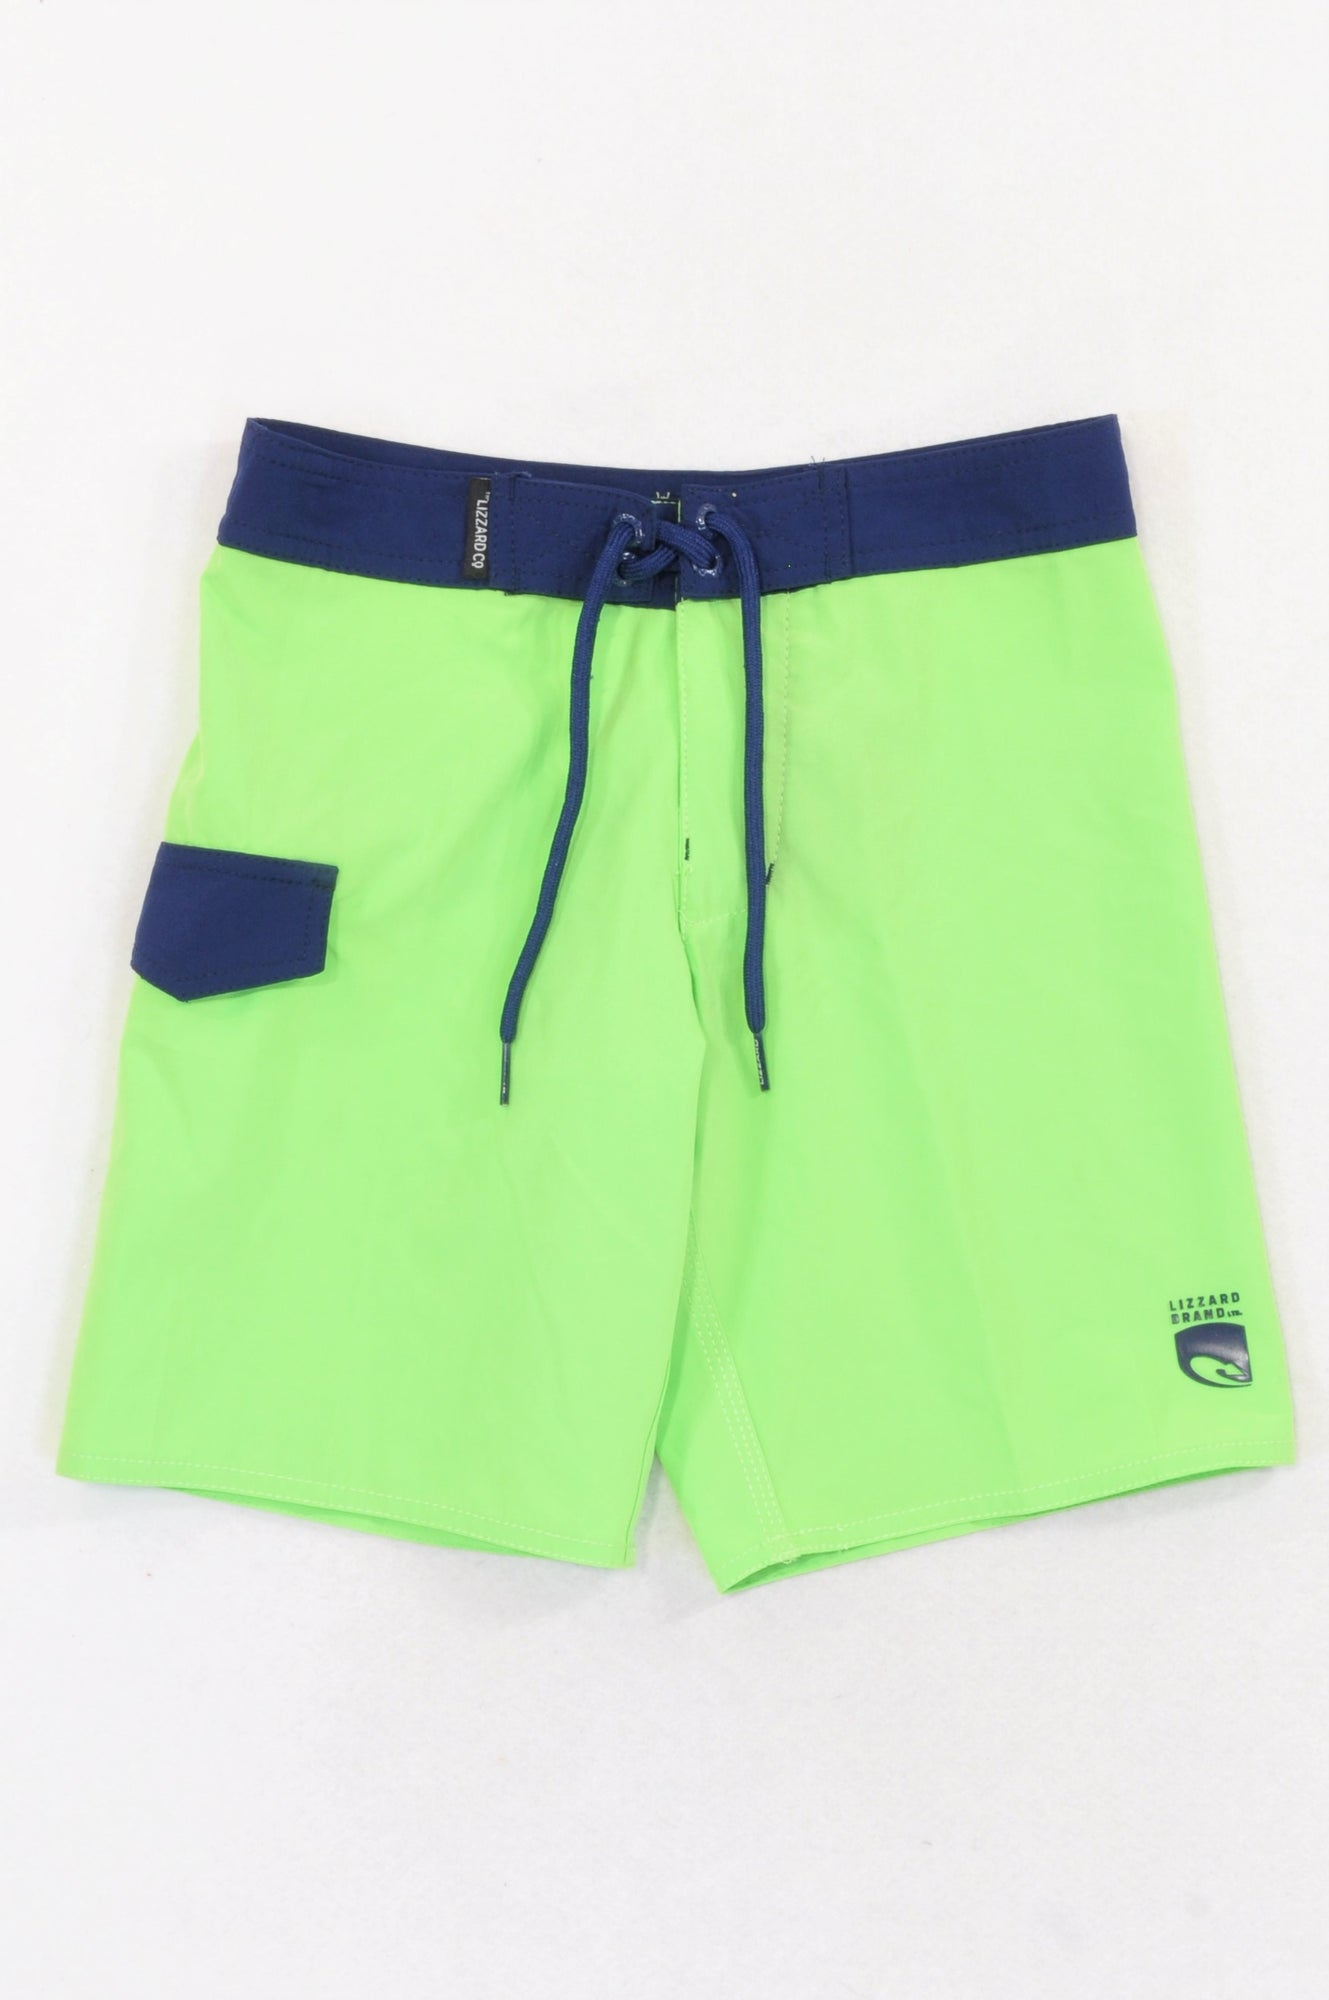 a0af9a317d Lizzard Lumo Green & Navy Swim Shorts Boys 7-8 years – Once More